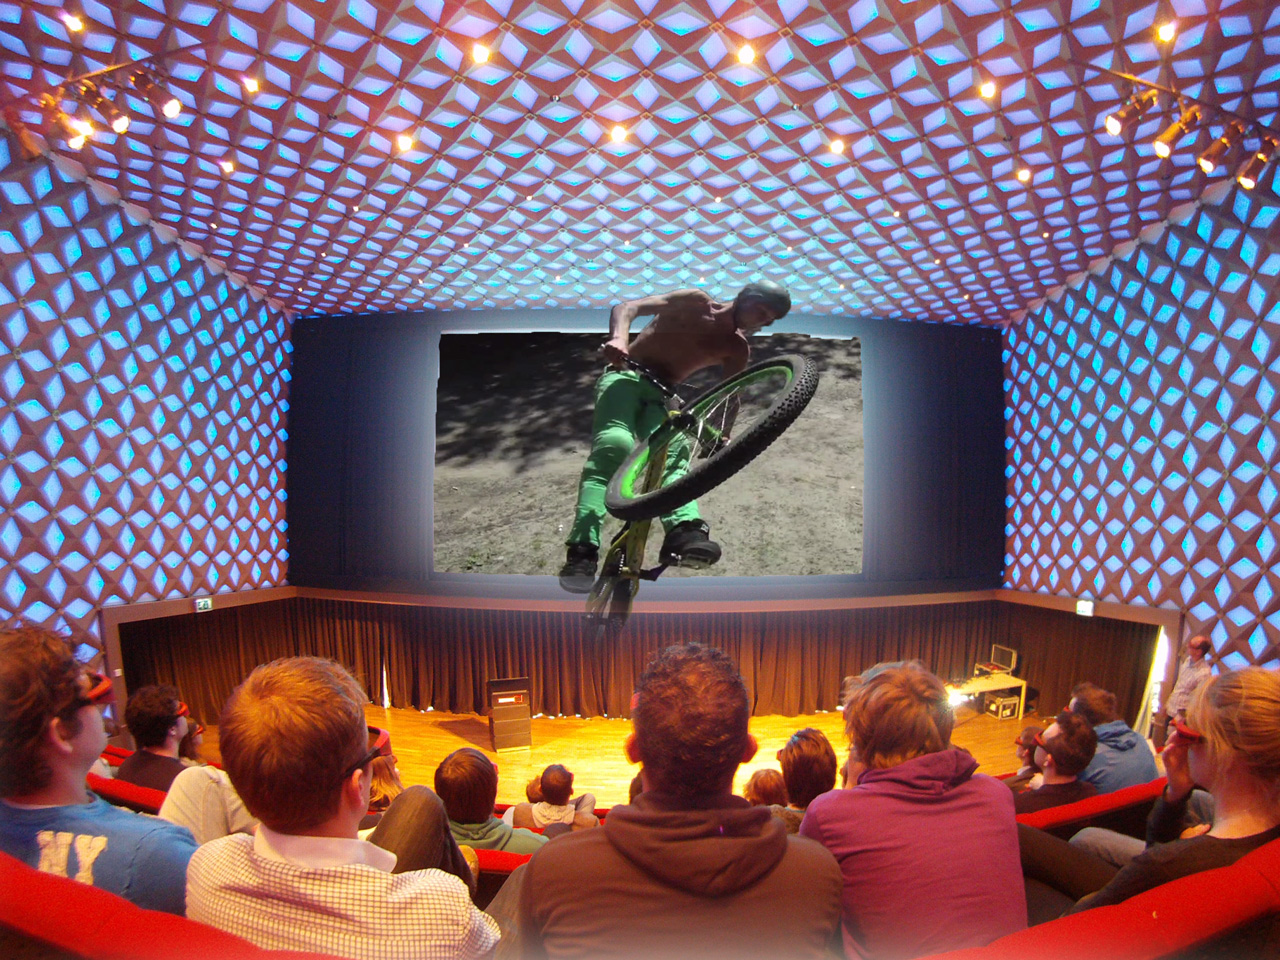 Flying Dirtmen 3D @ 3Dnl Livelab